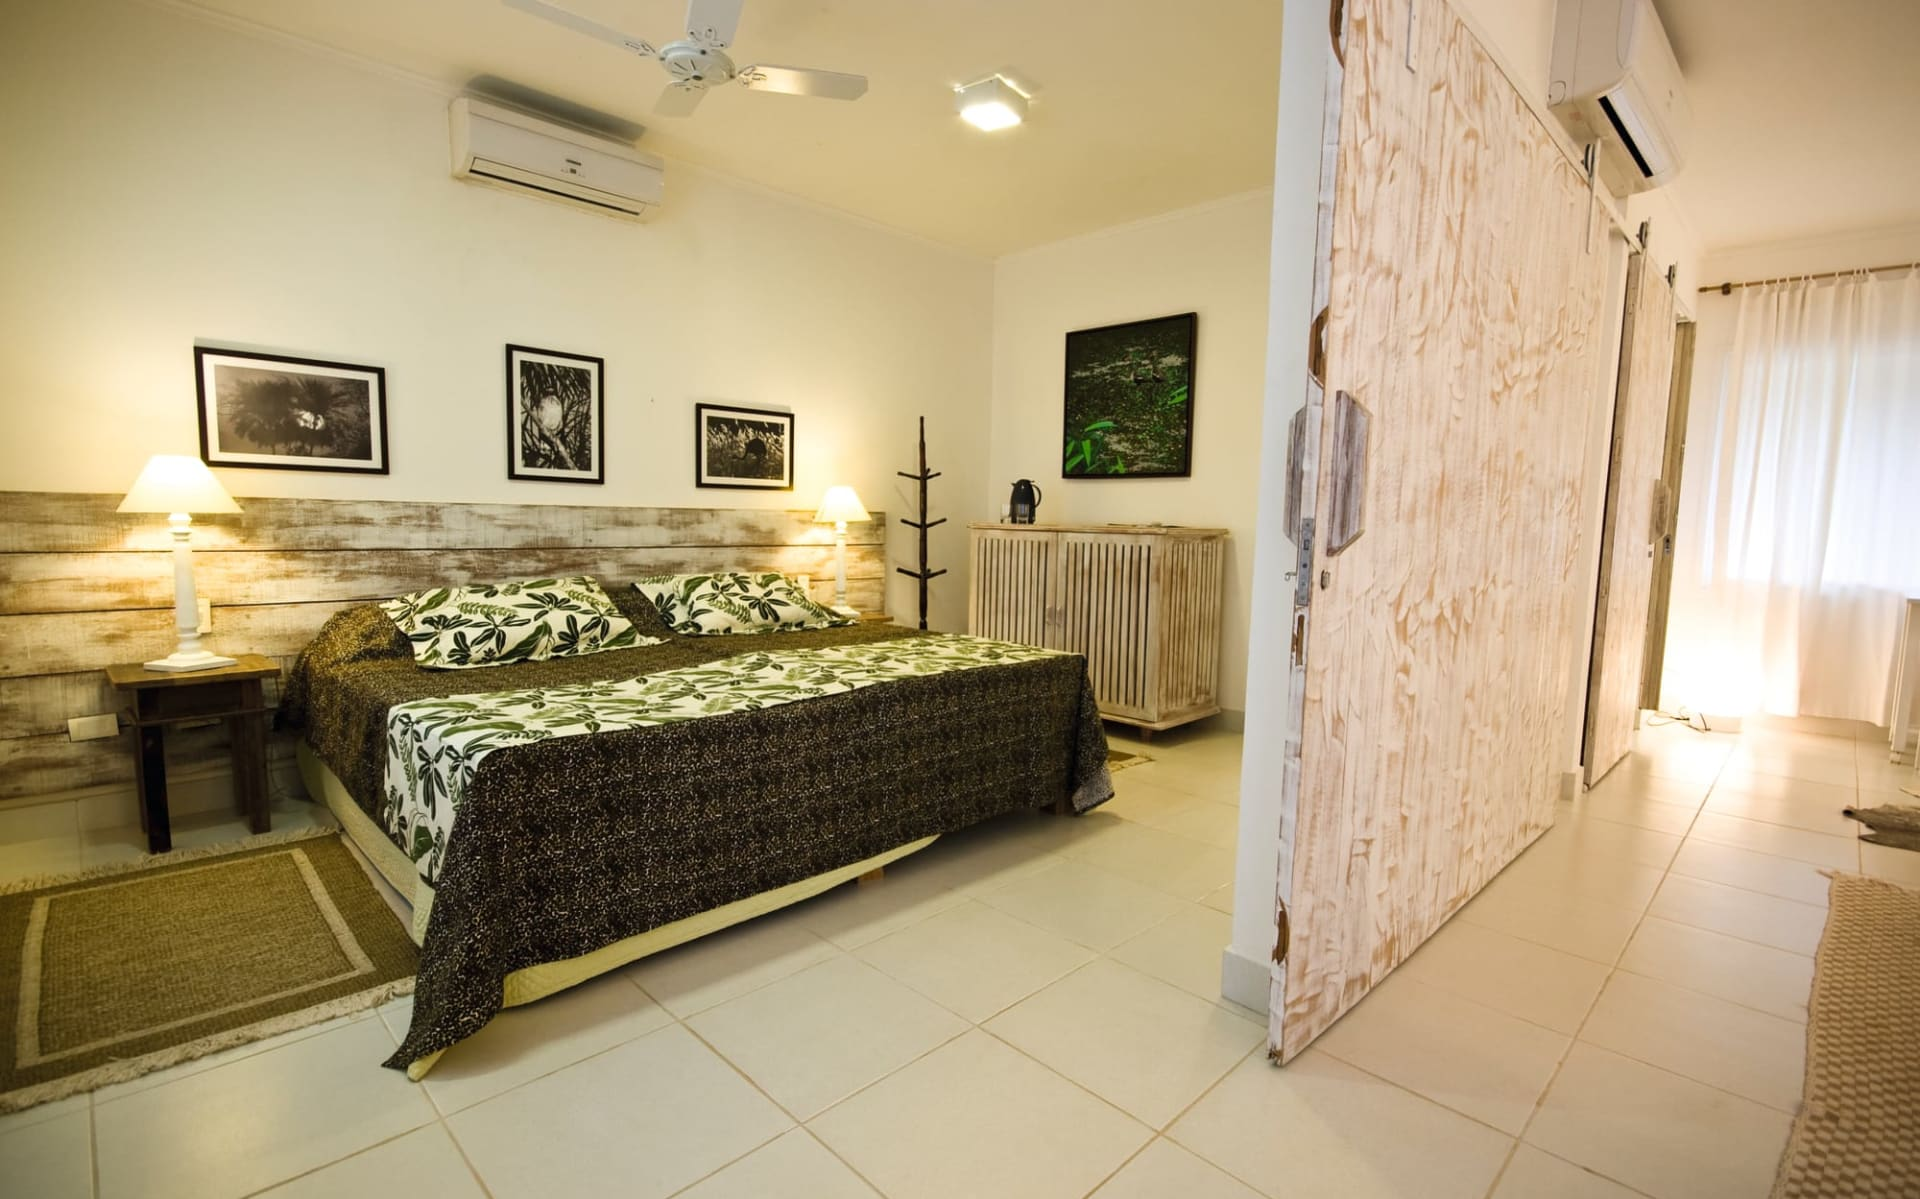 Caiman Ecological Refugium 4 Tage ab Campo Grande: Zimmer Caiman Lodge - Suite Cordilheira c Compass